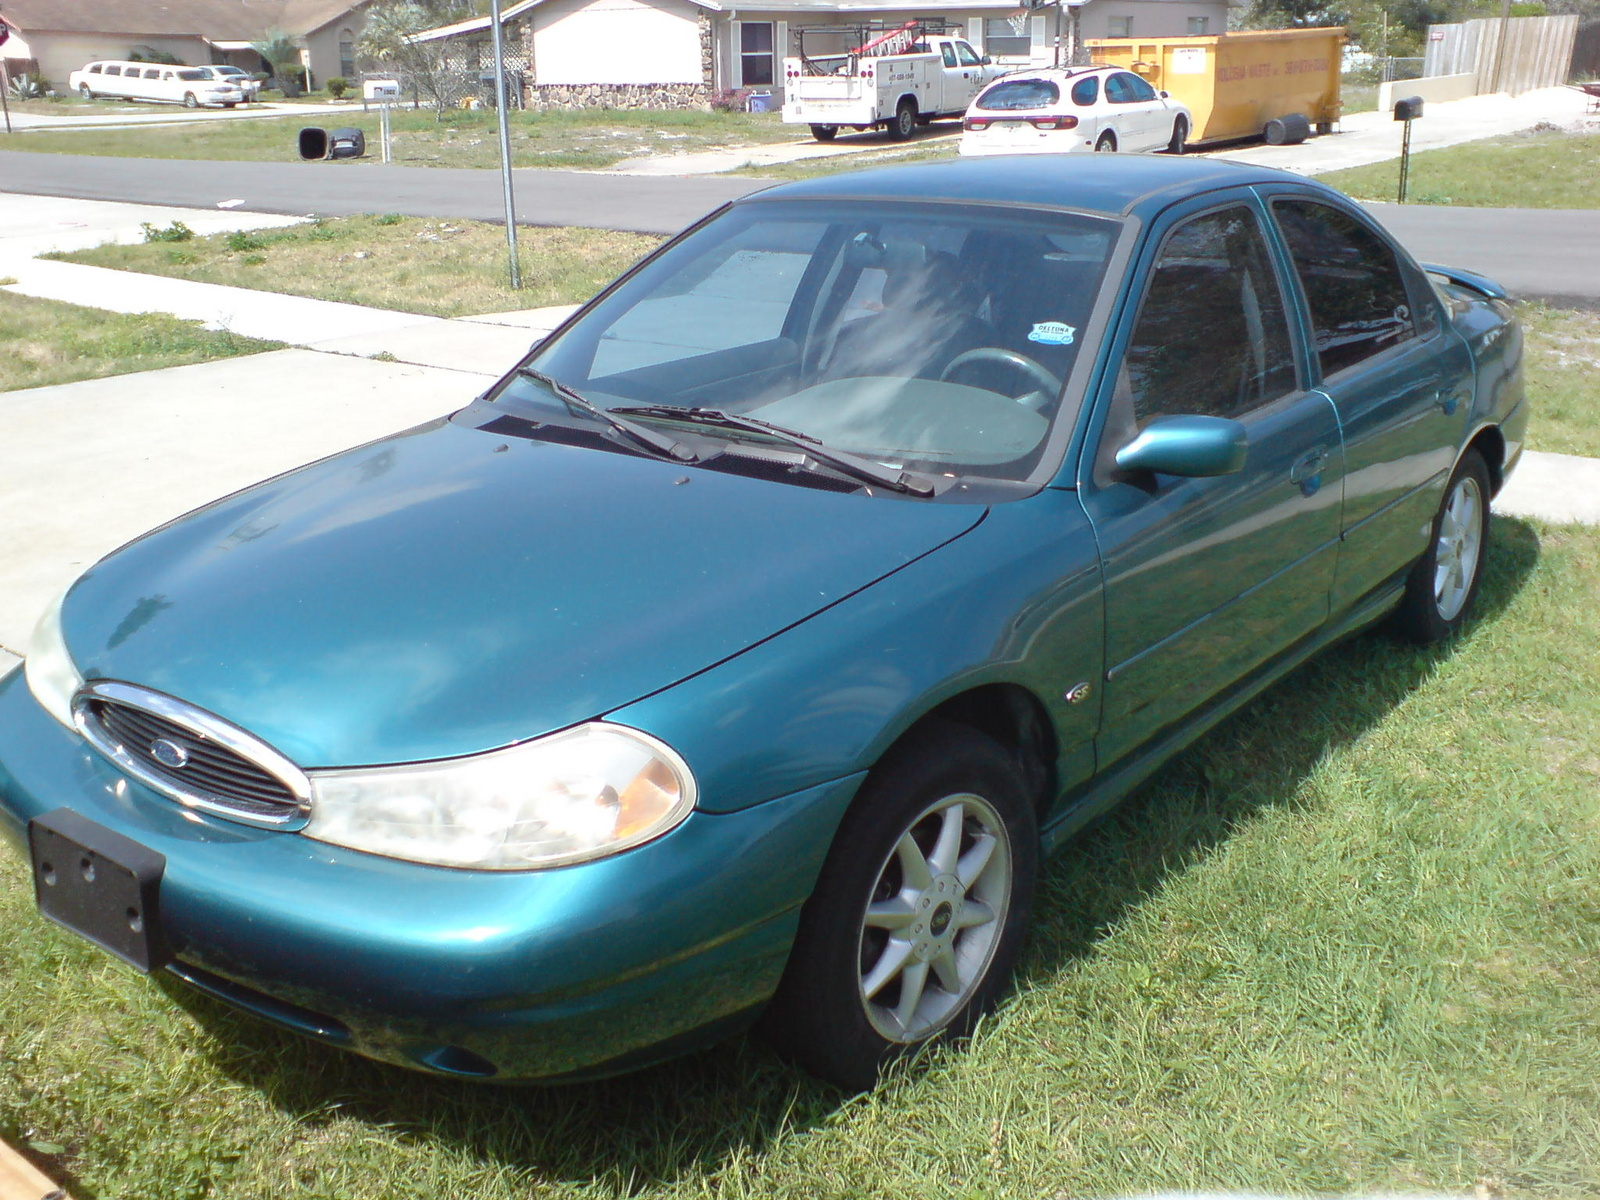 1998 Ford Contour 4 Dr SE Sedan picture, exterior